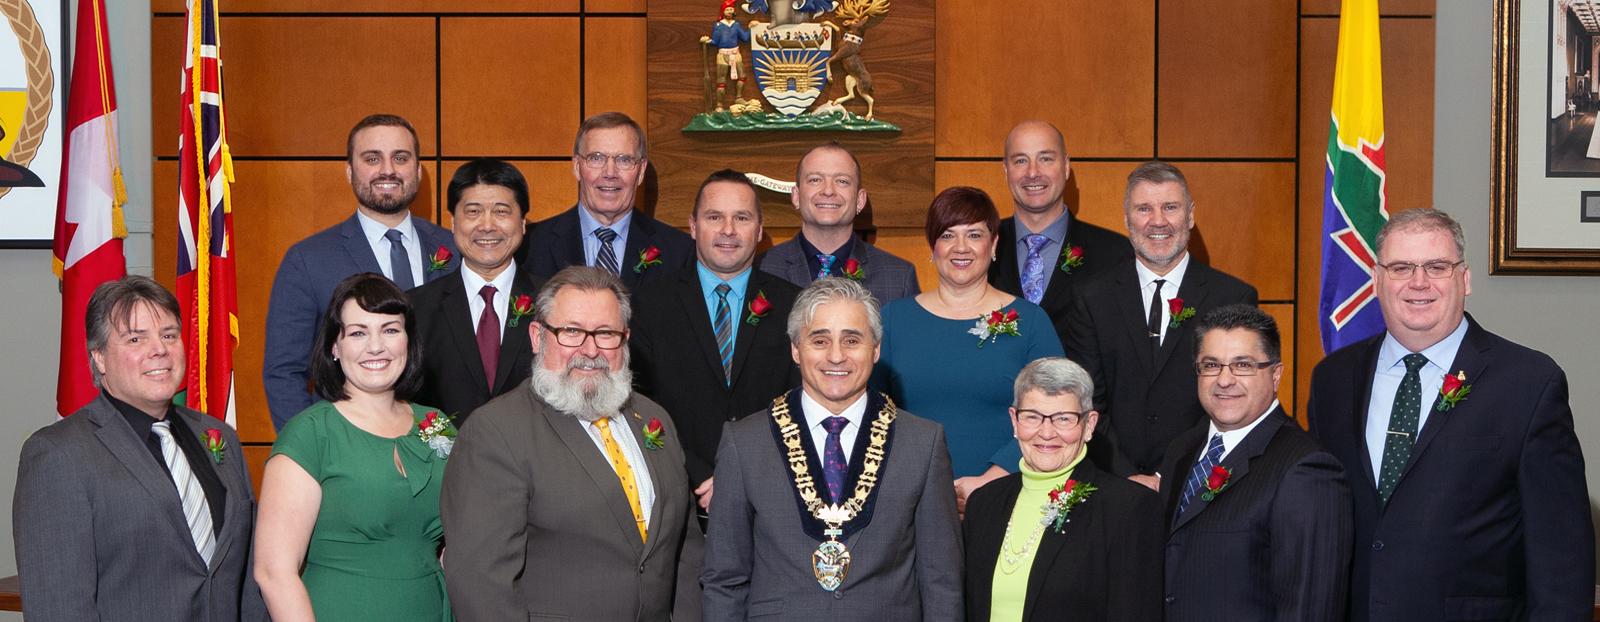 2018-2022 Thunder Bay City Council